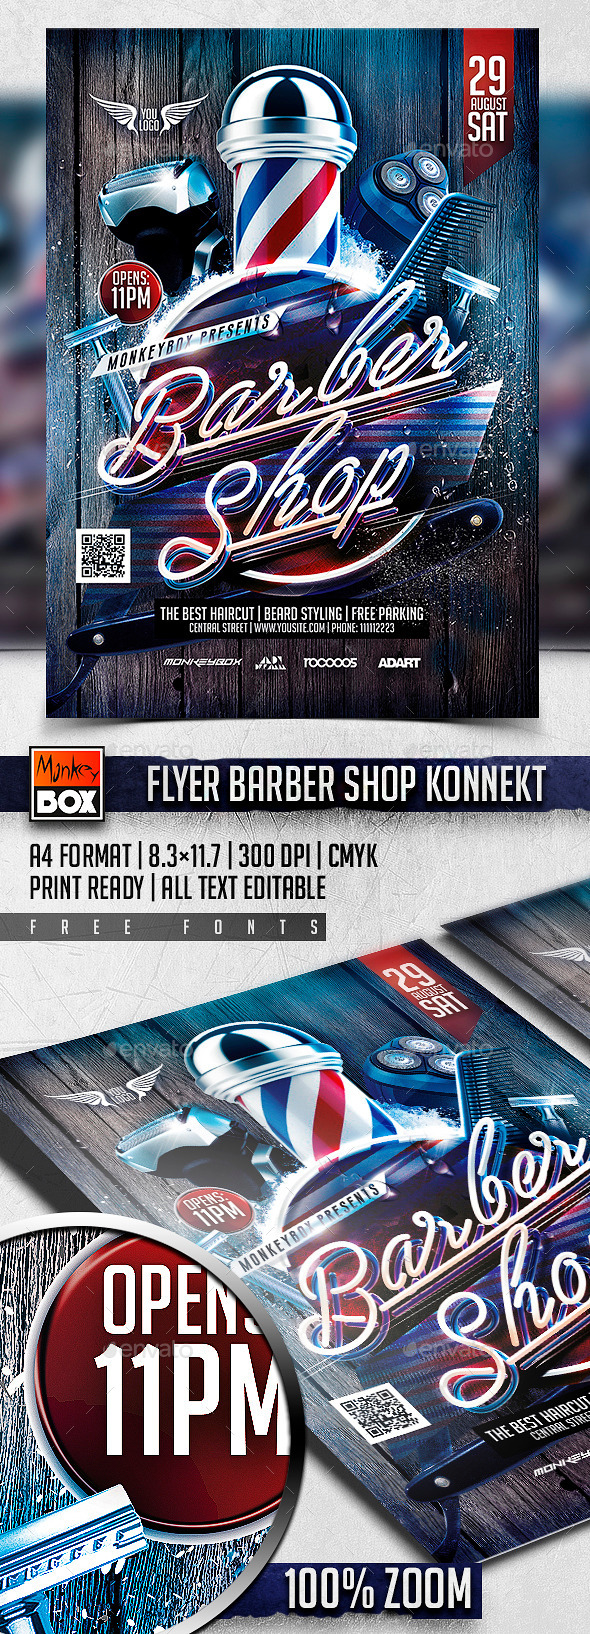 Flyer Barber Shop Konnekt - Events Flyers